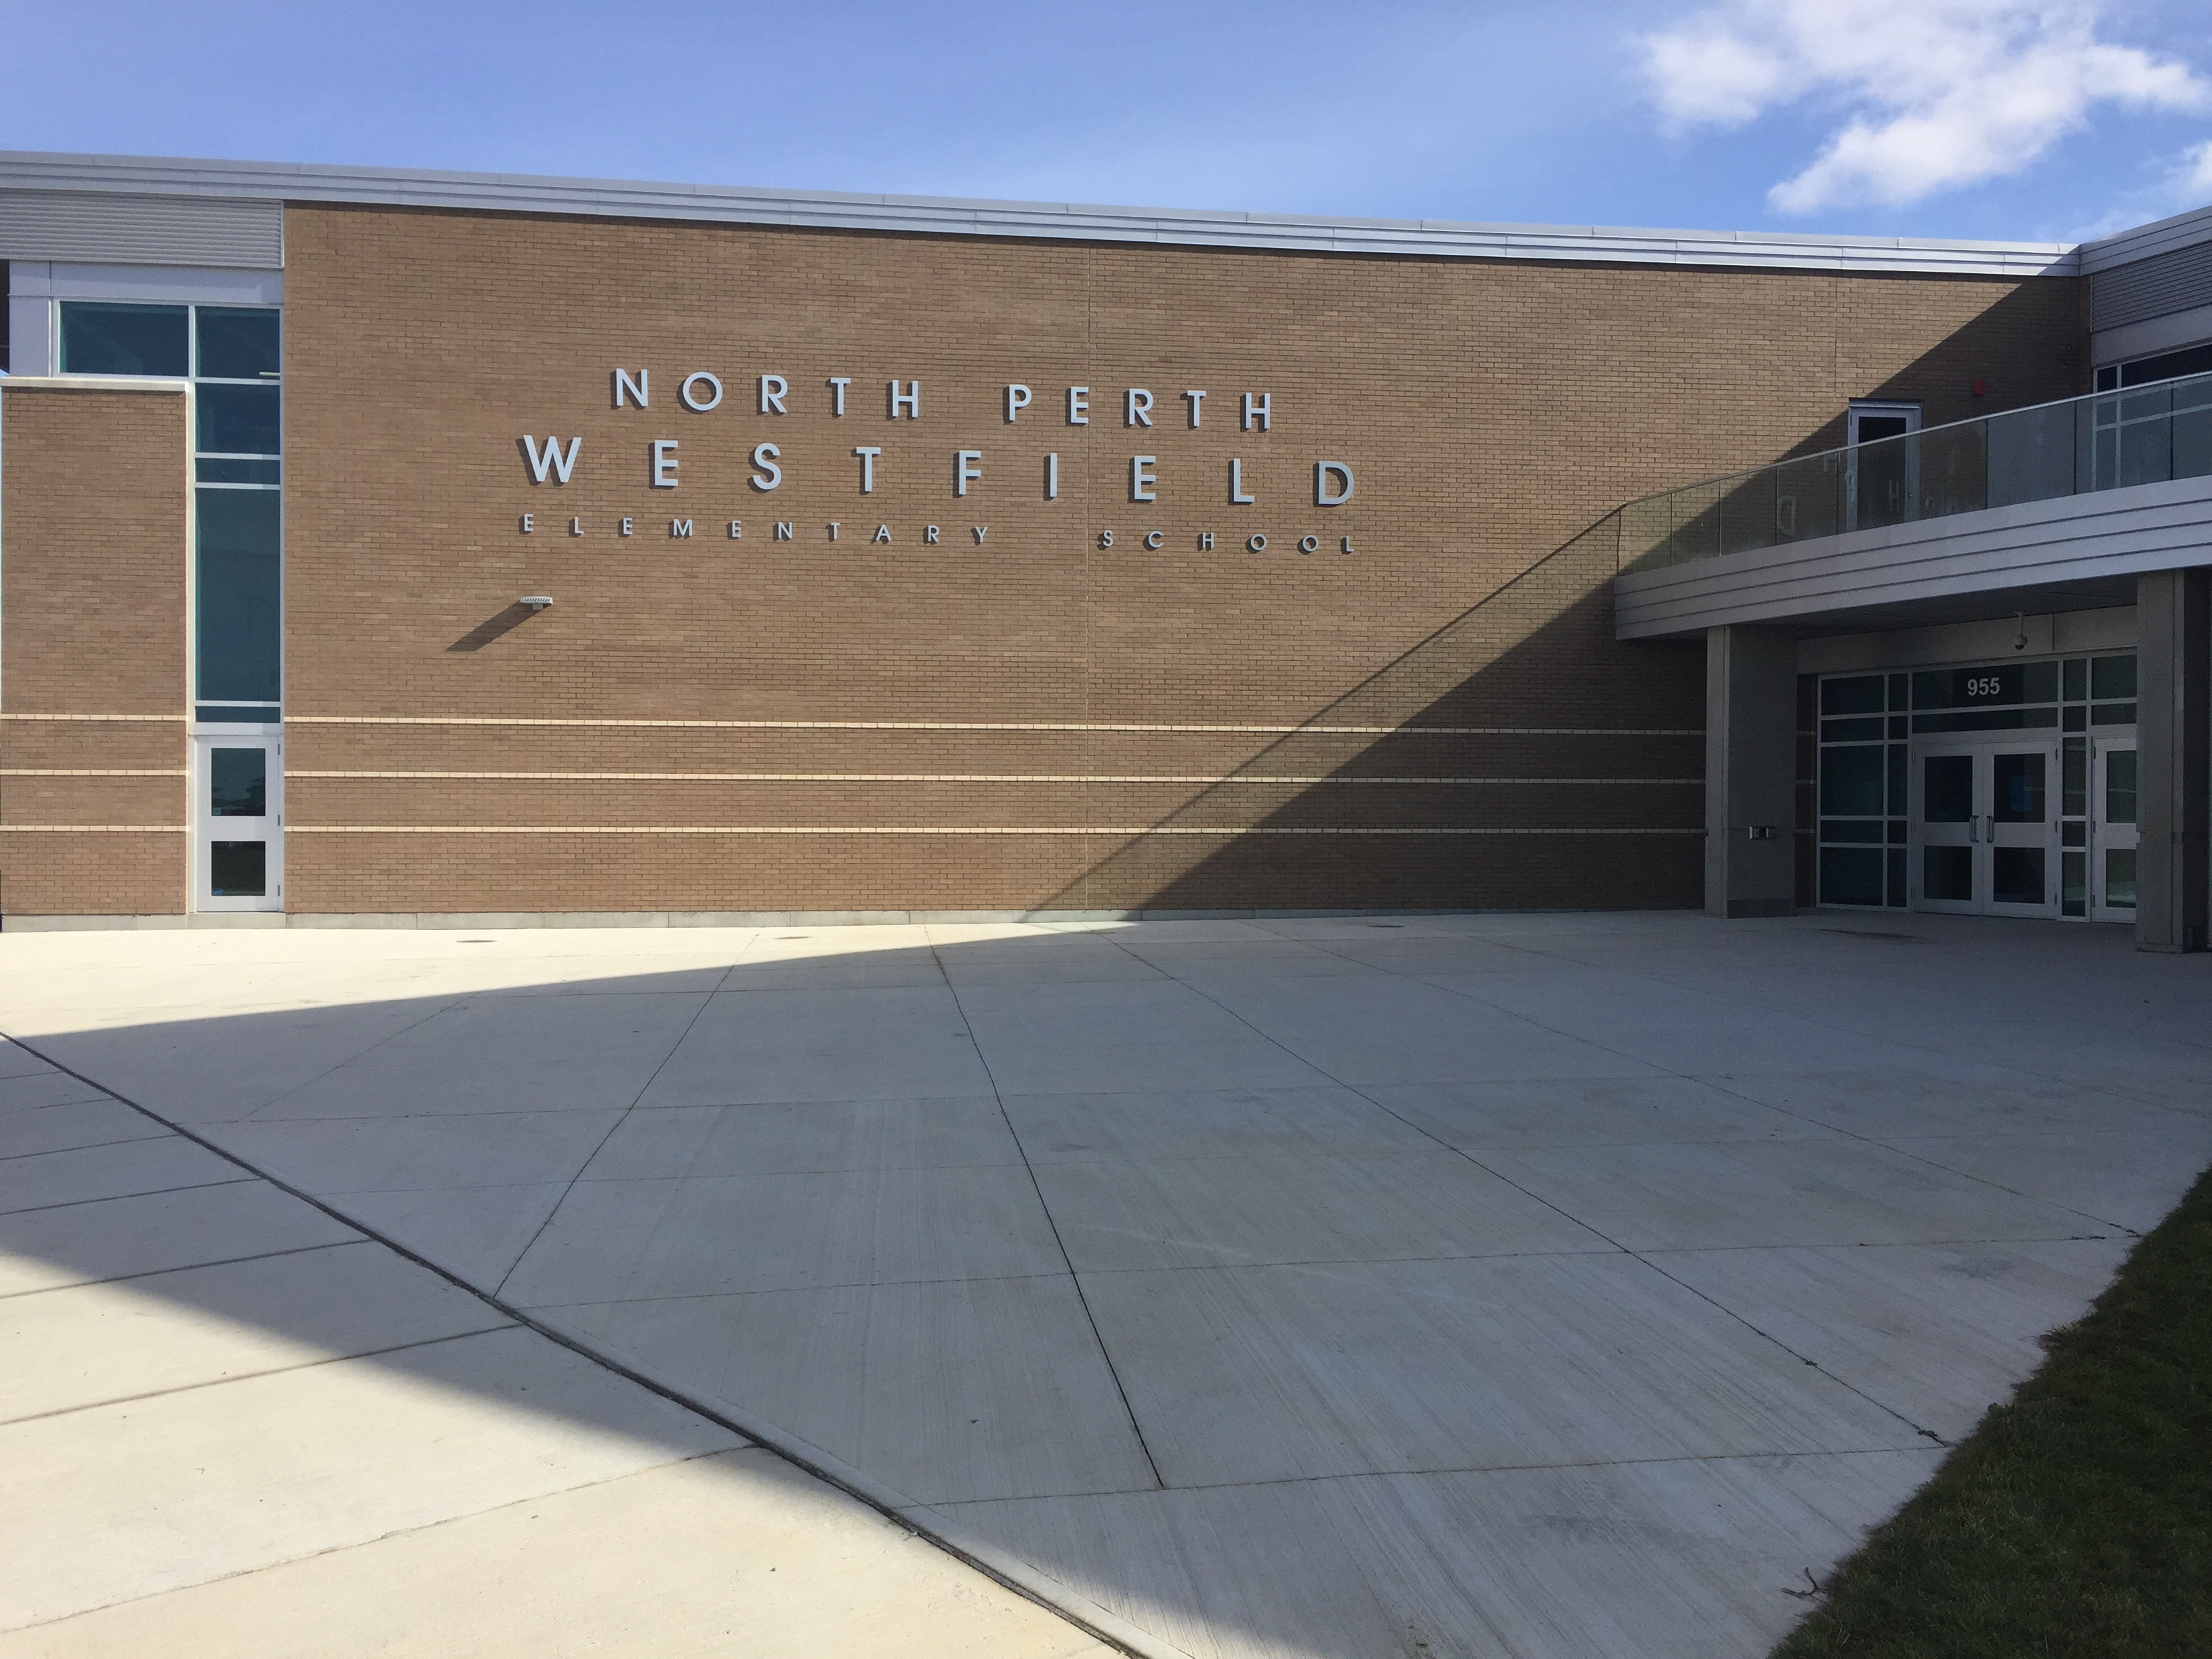 Listowel's North Perth Westfield Elementary Hosts Welcome Ceremony